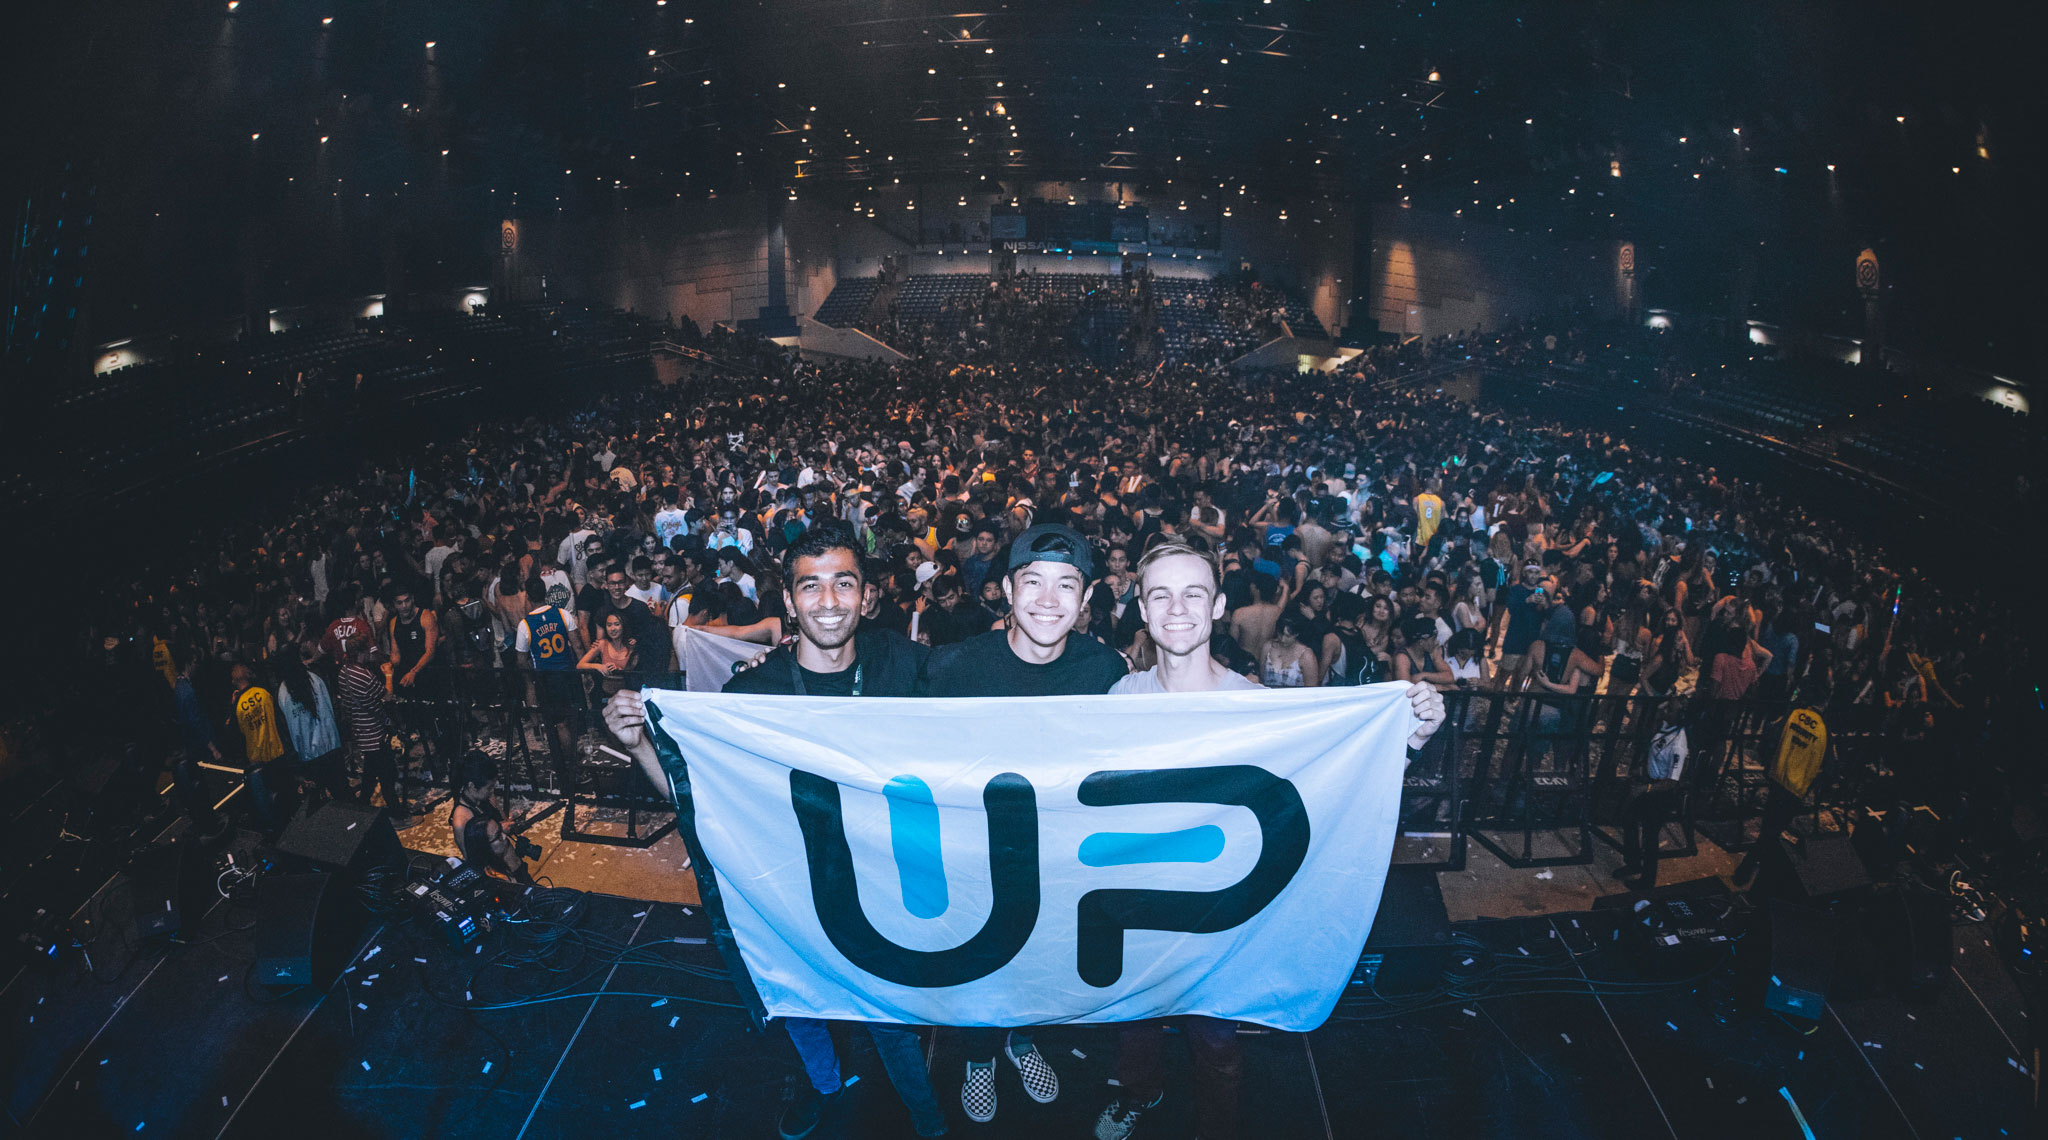 Group of students holding Up & Up flag at concert